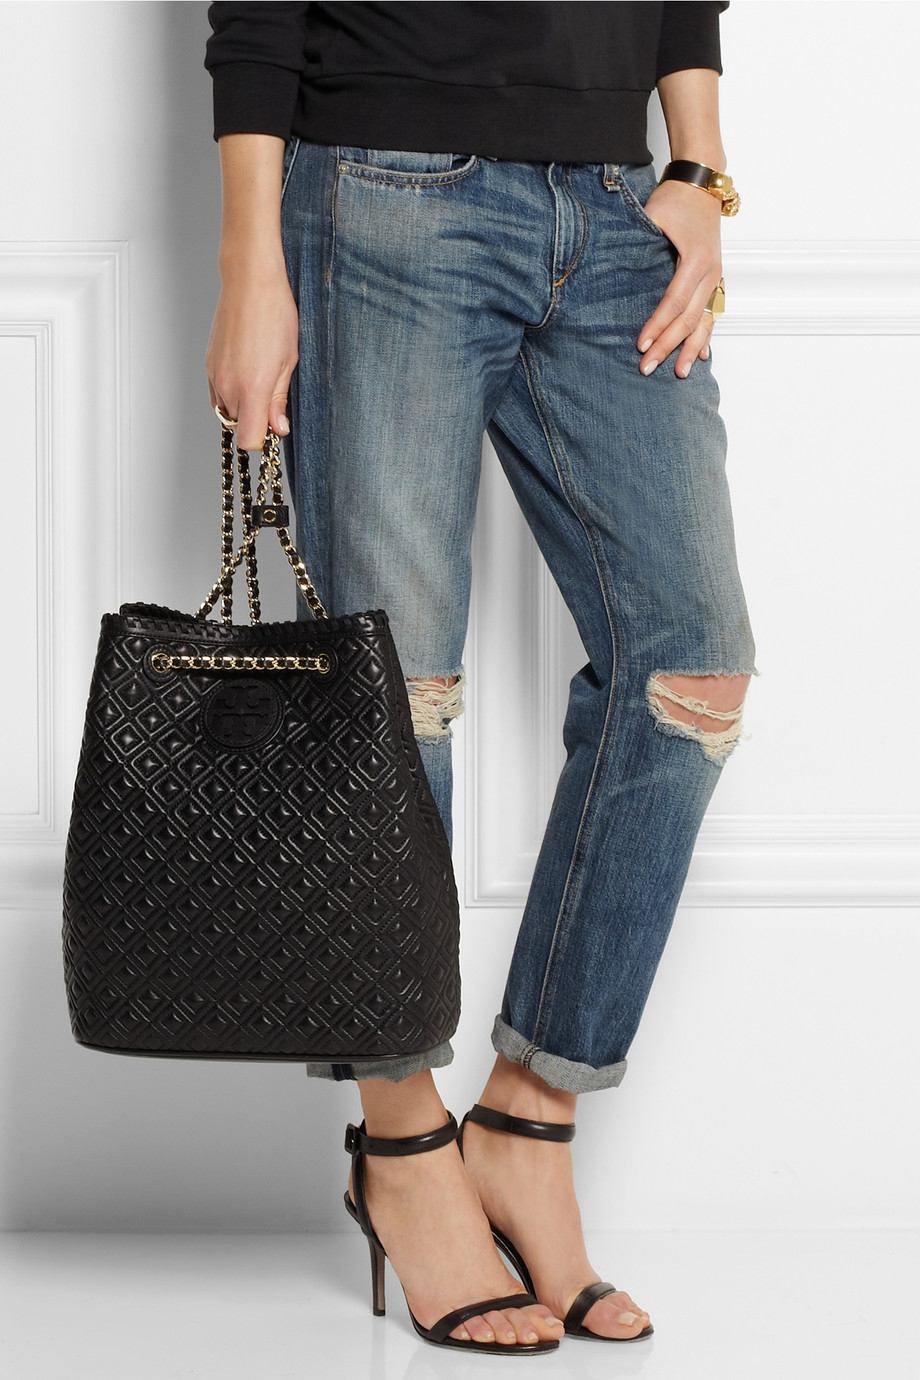 Lyst Tory Burch Marion Quilted Leather Backpack In Black